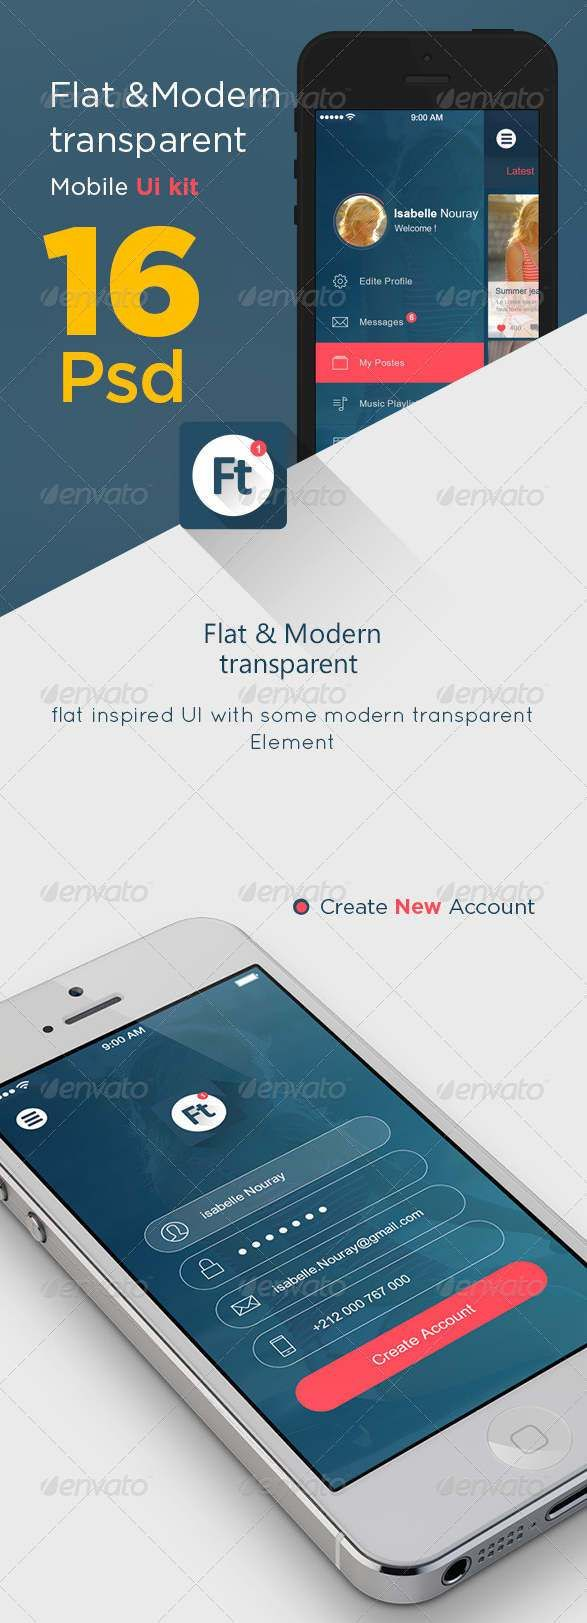 Pin by Axis Port Lab on Free PSD Files Freebies | Android ...